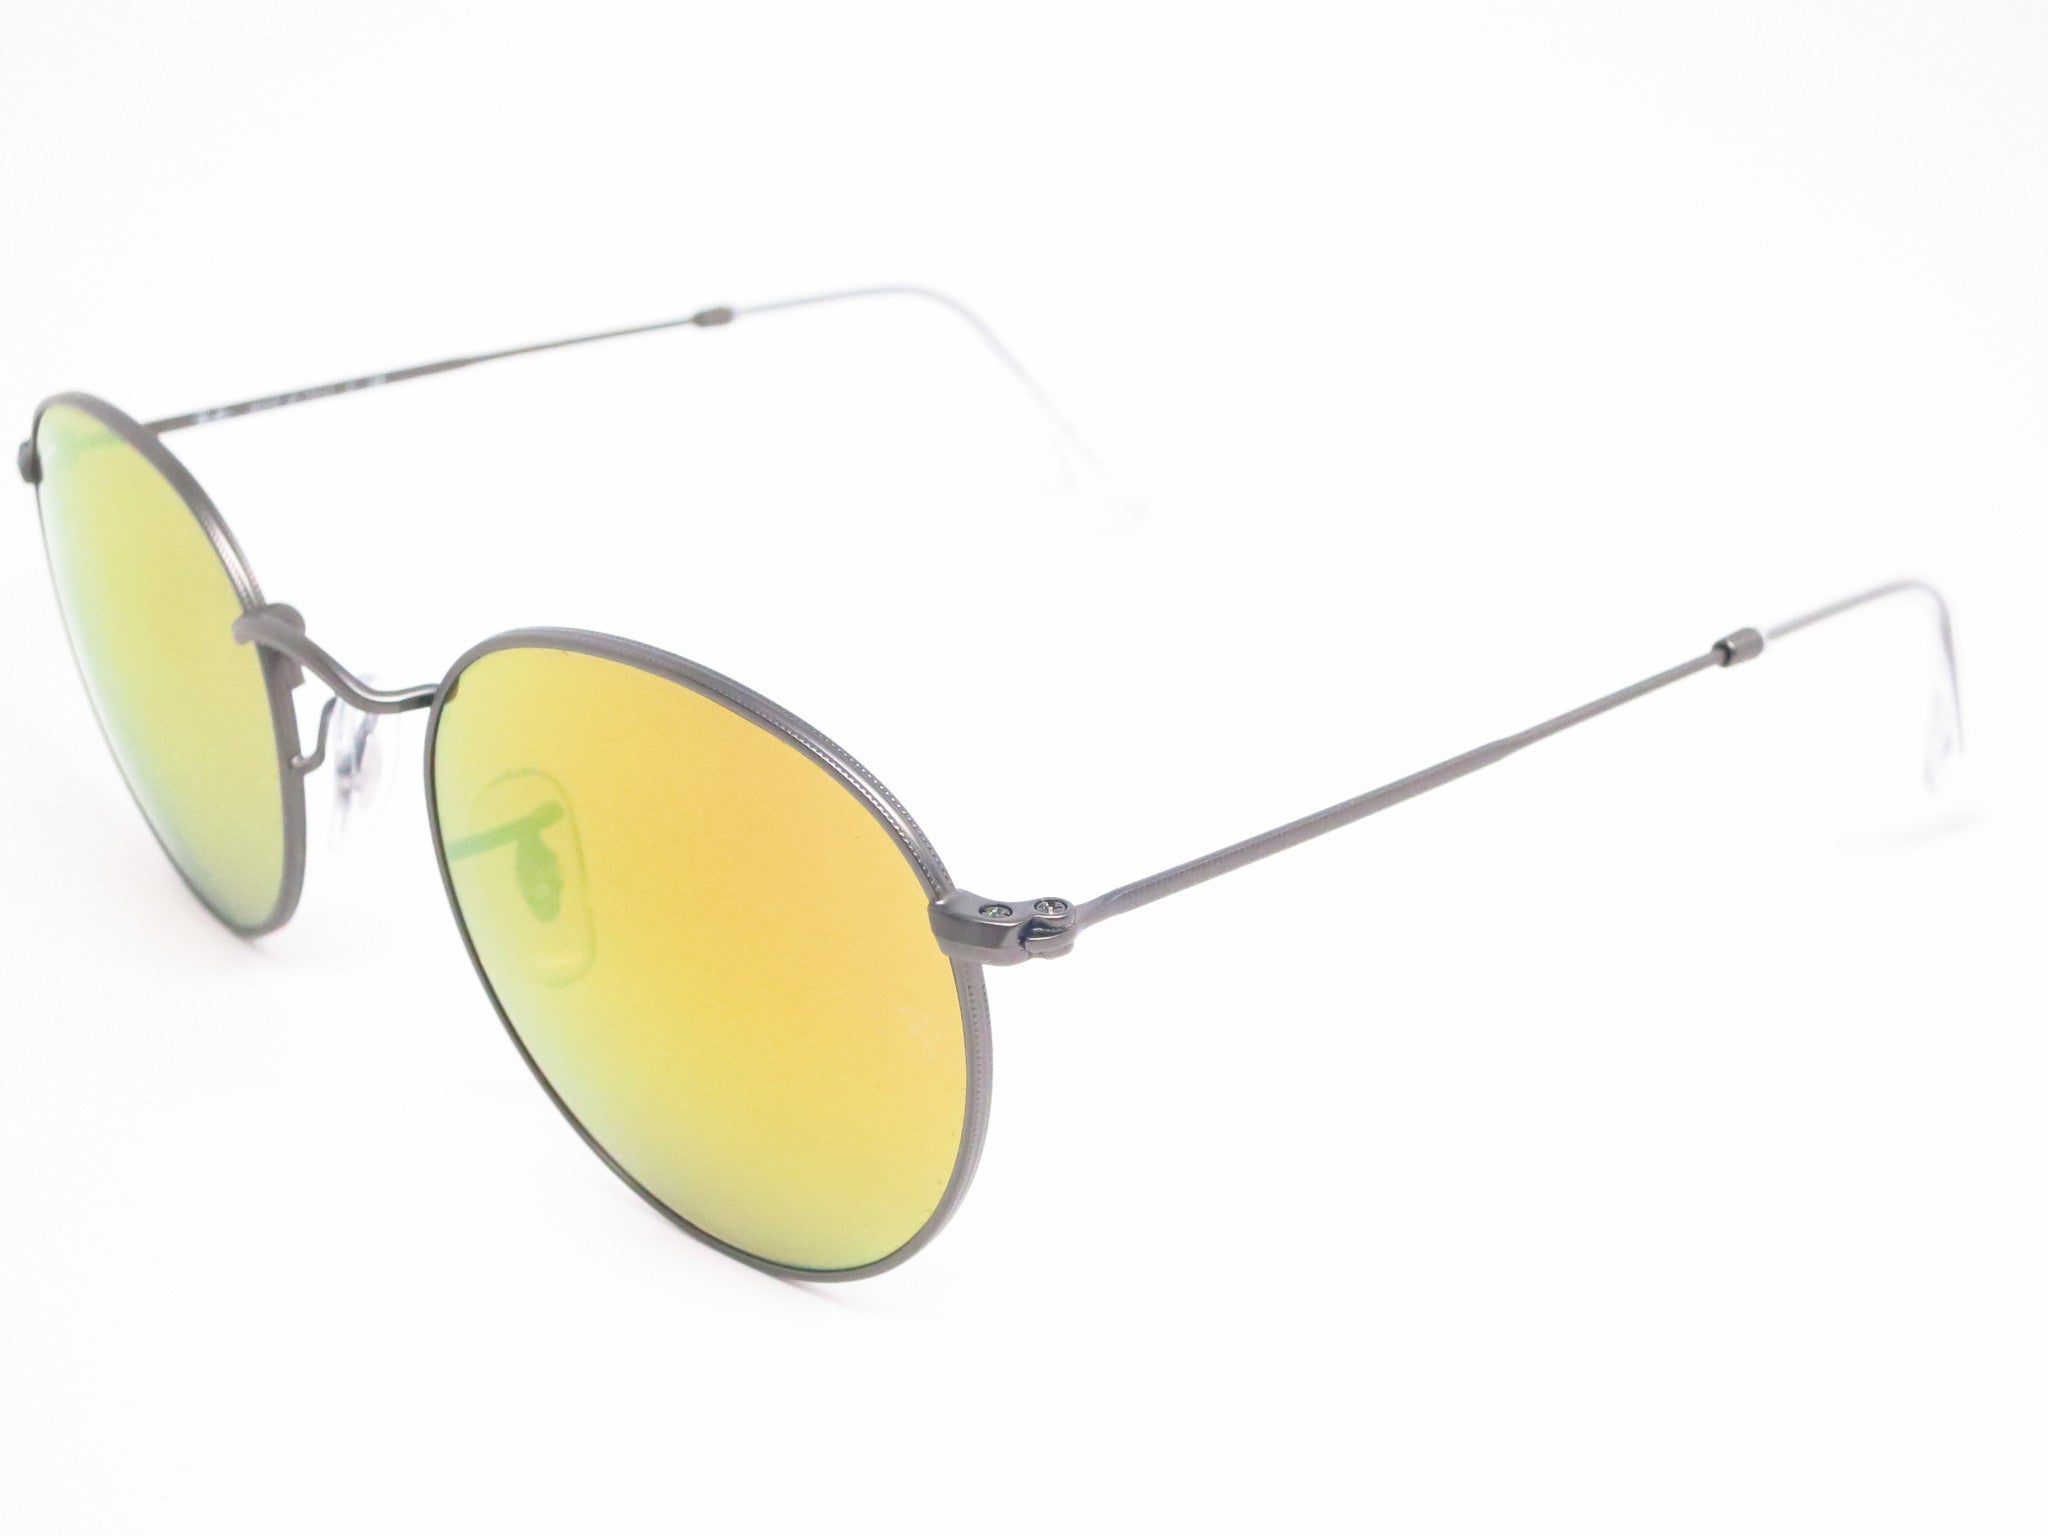 3158c9610d Ray-Ban RB 3447 Round Metal 029 93 Matte Gunmetal Sunglasses - Eye Heart ...